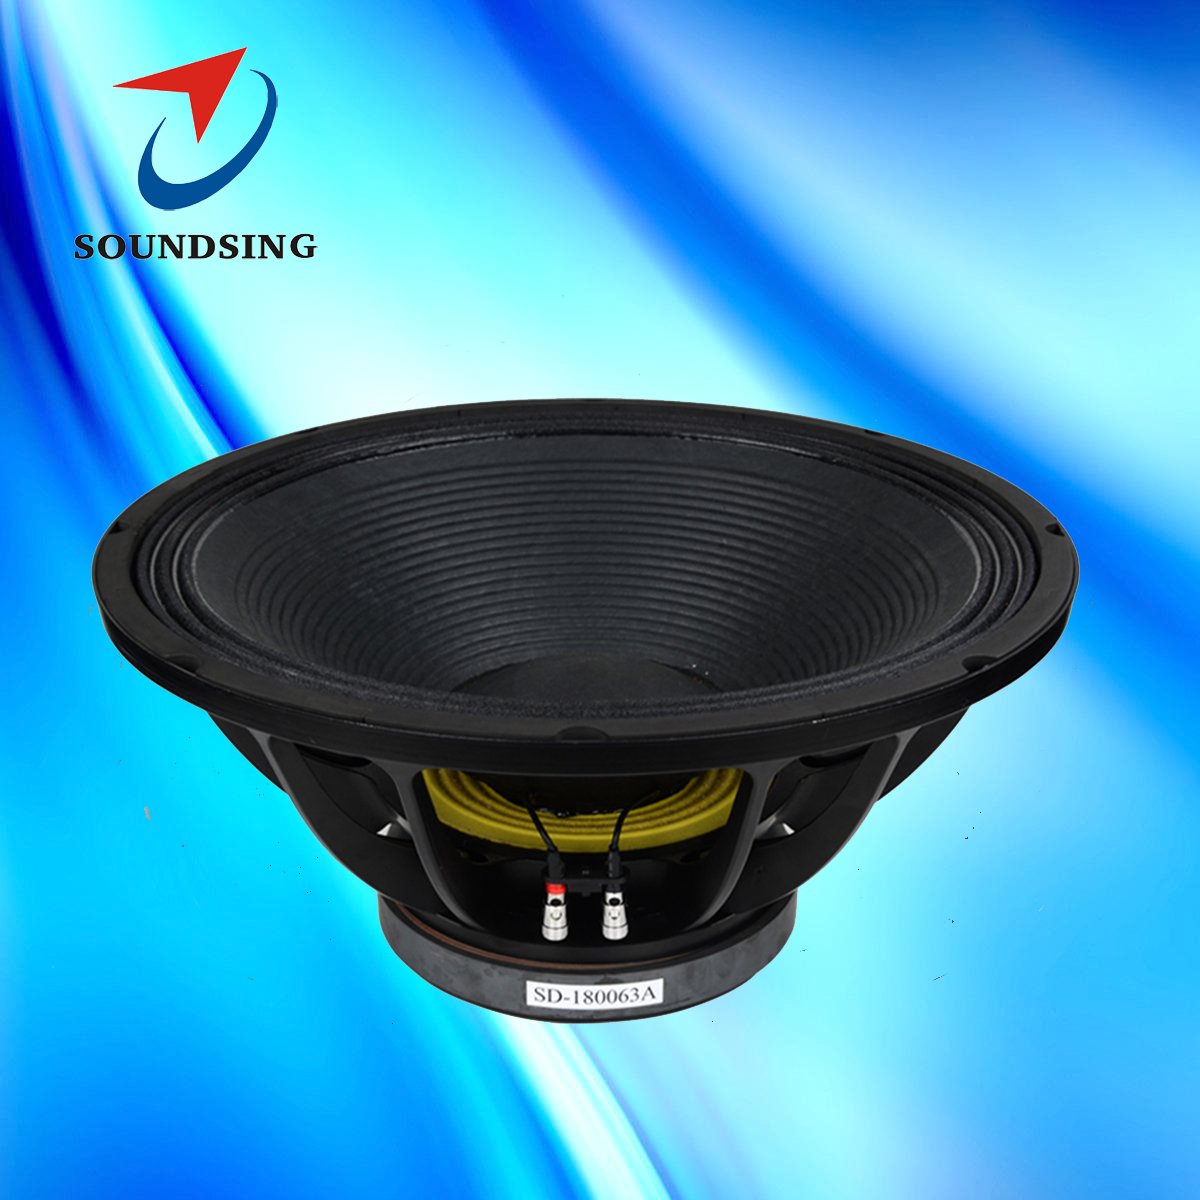 outdoor speaker 18 inch SD-180063A